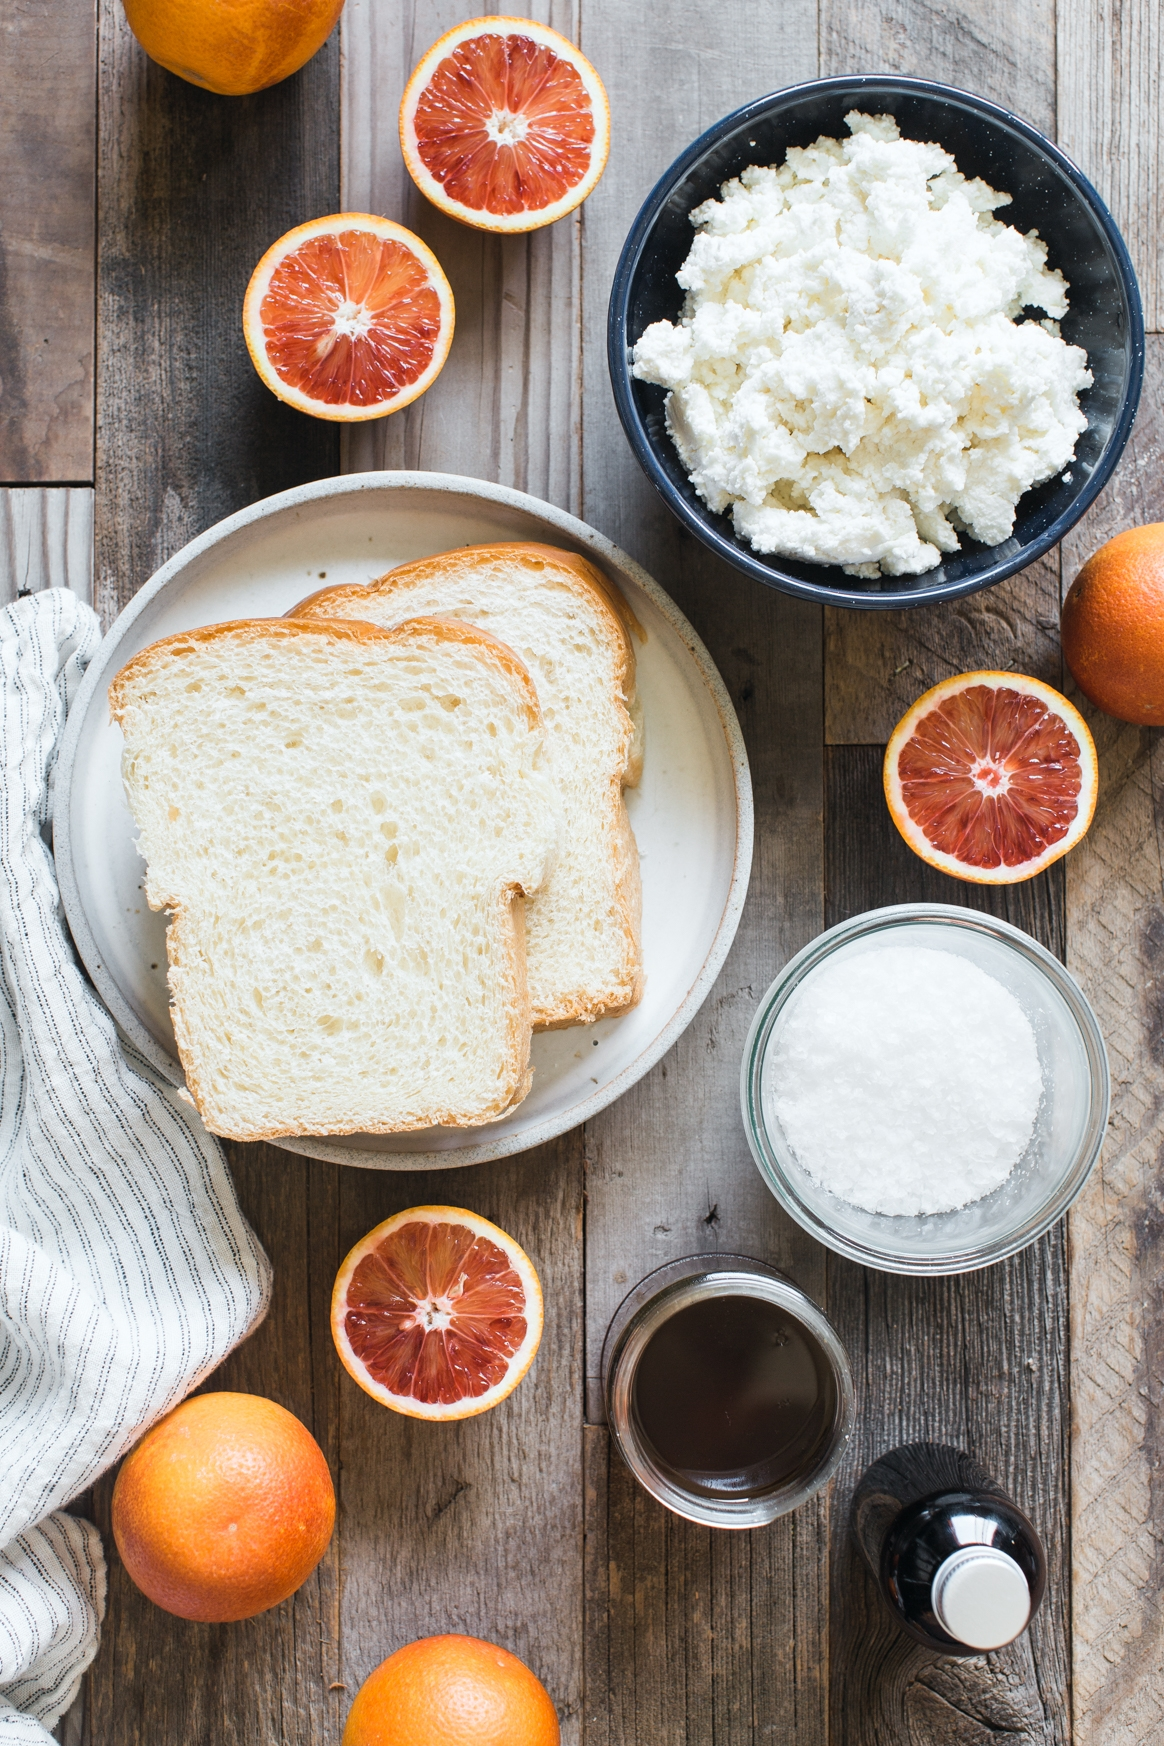 Blood Orange Ricotta Toast Ingredients